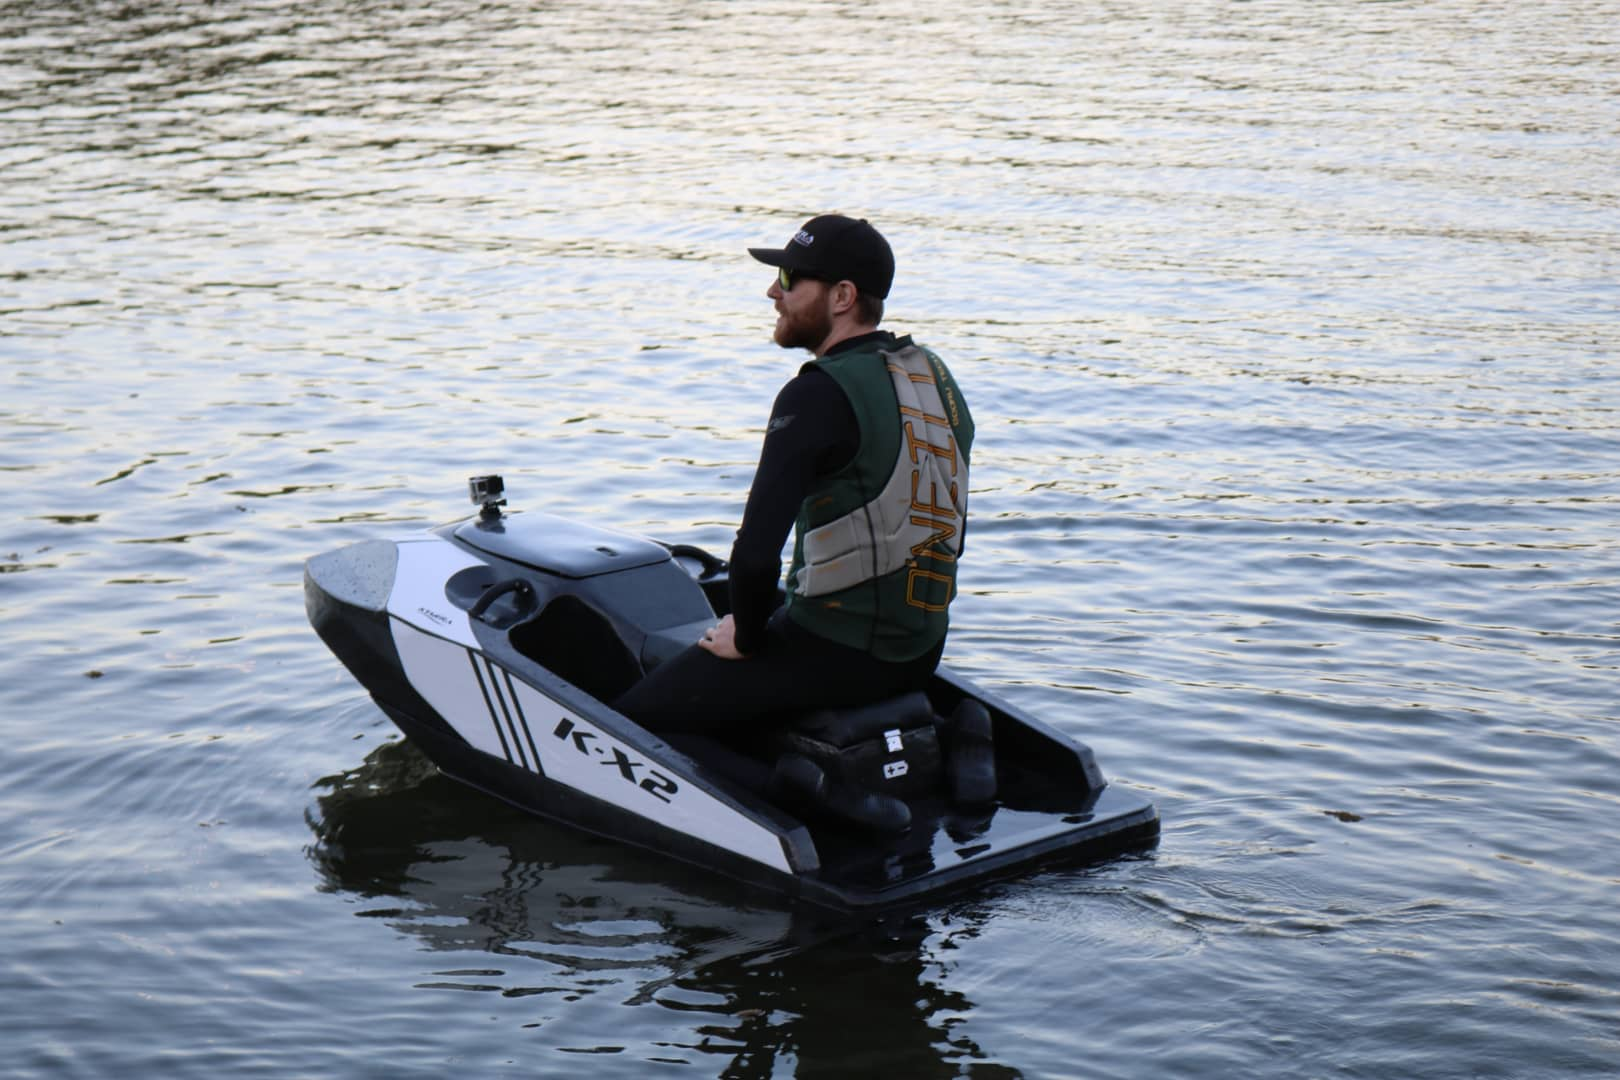 Kymera floats fast, lightweight and powerful electric personal watercraft